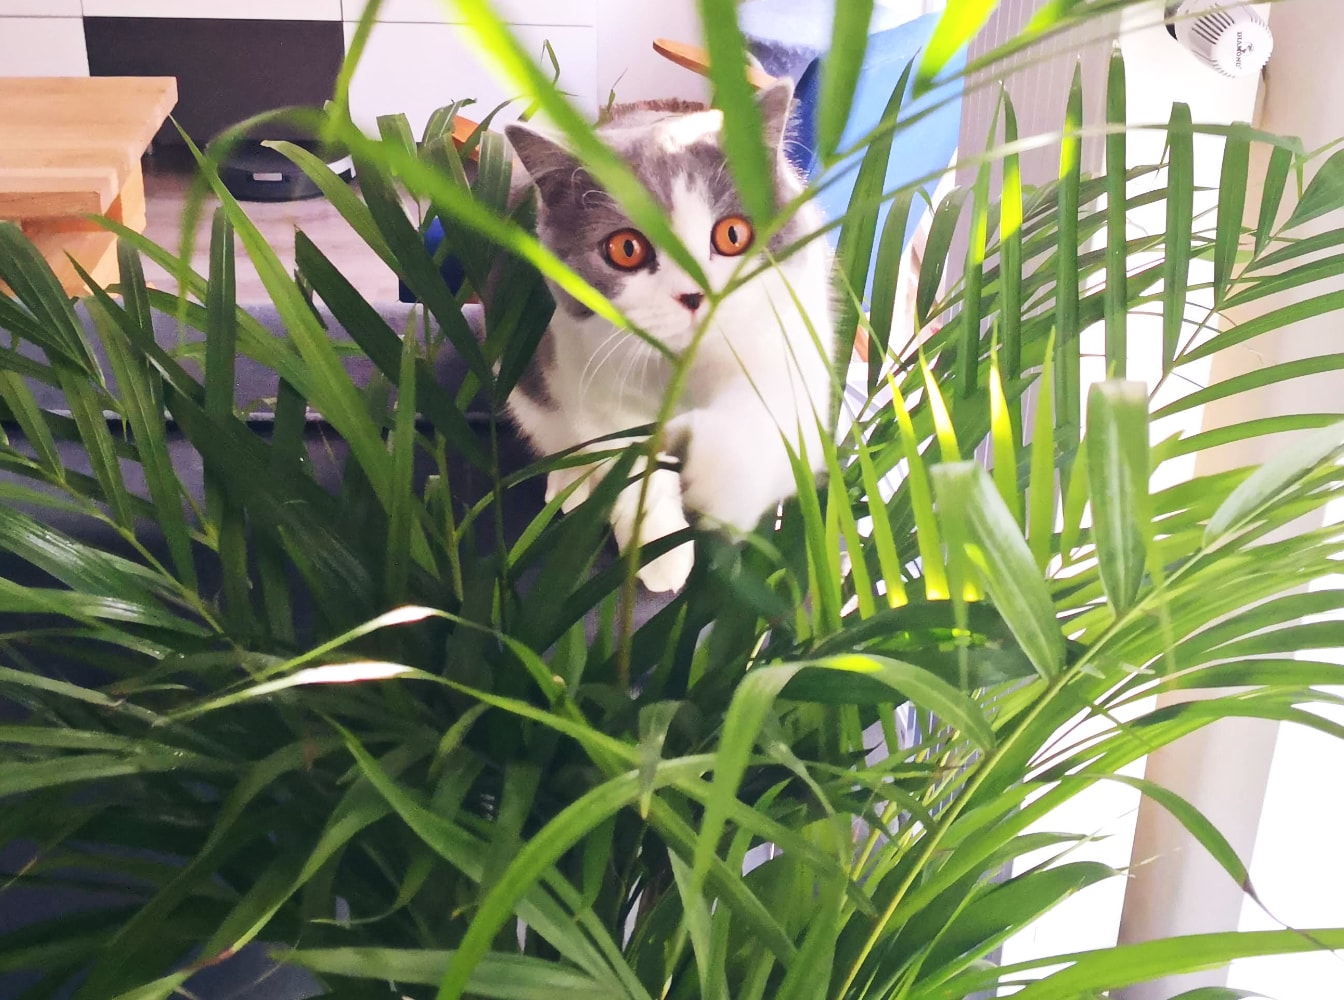 flowers safe for animals british cat in flowers cats friendly houseplants